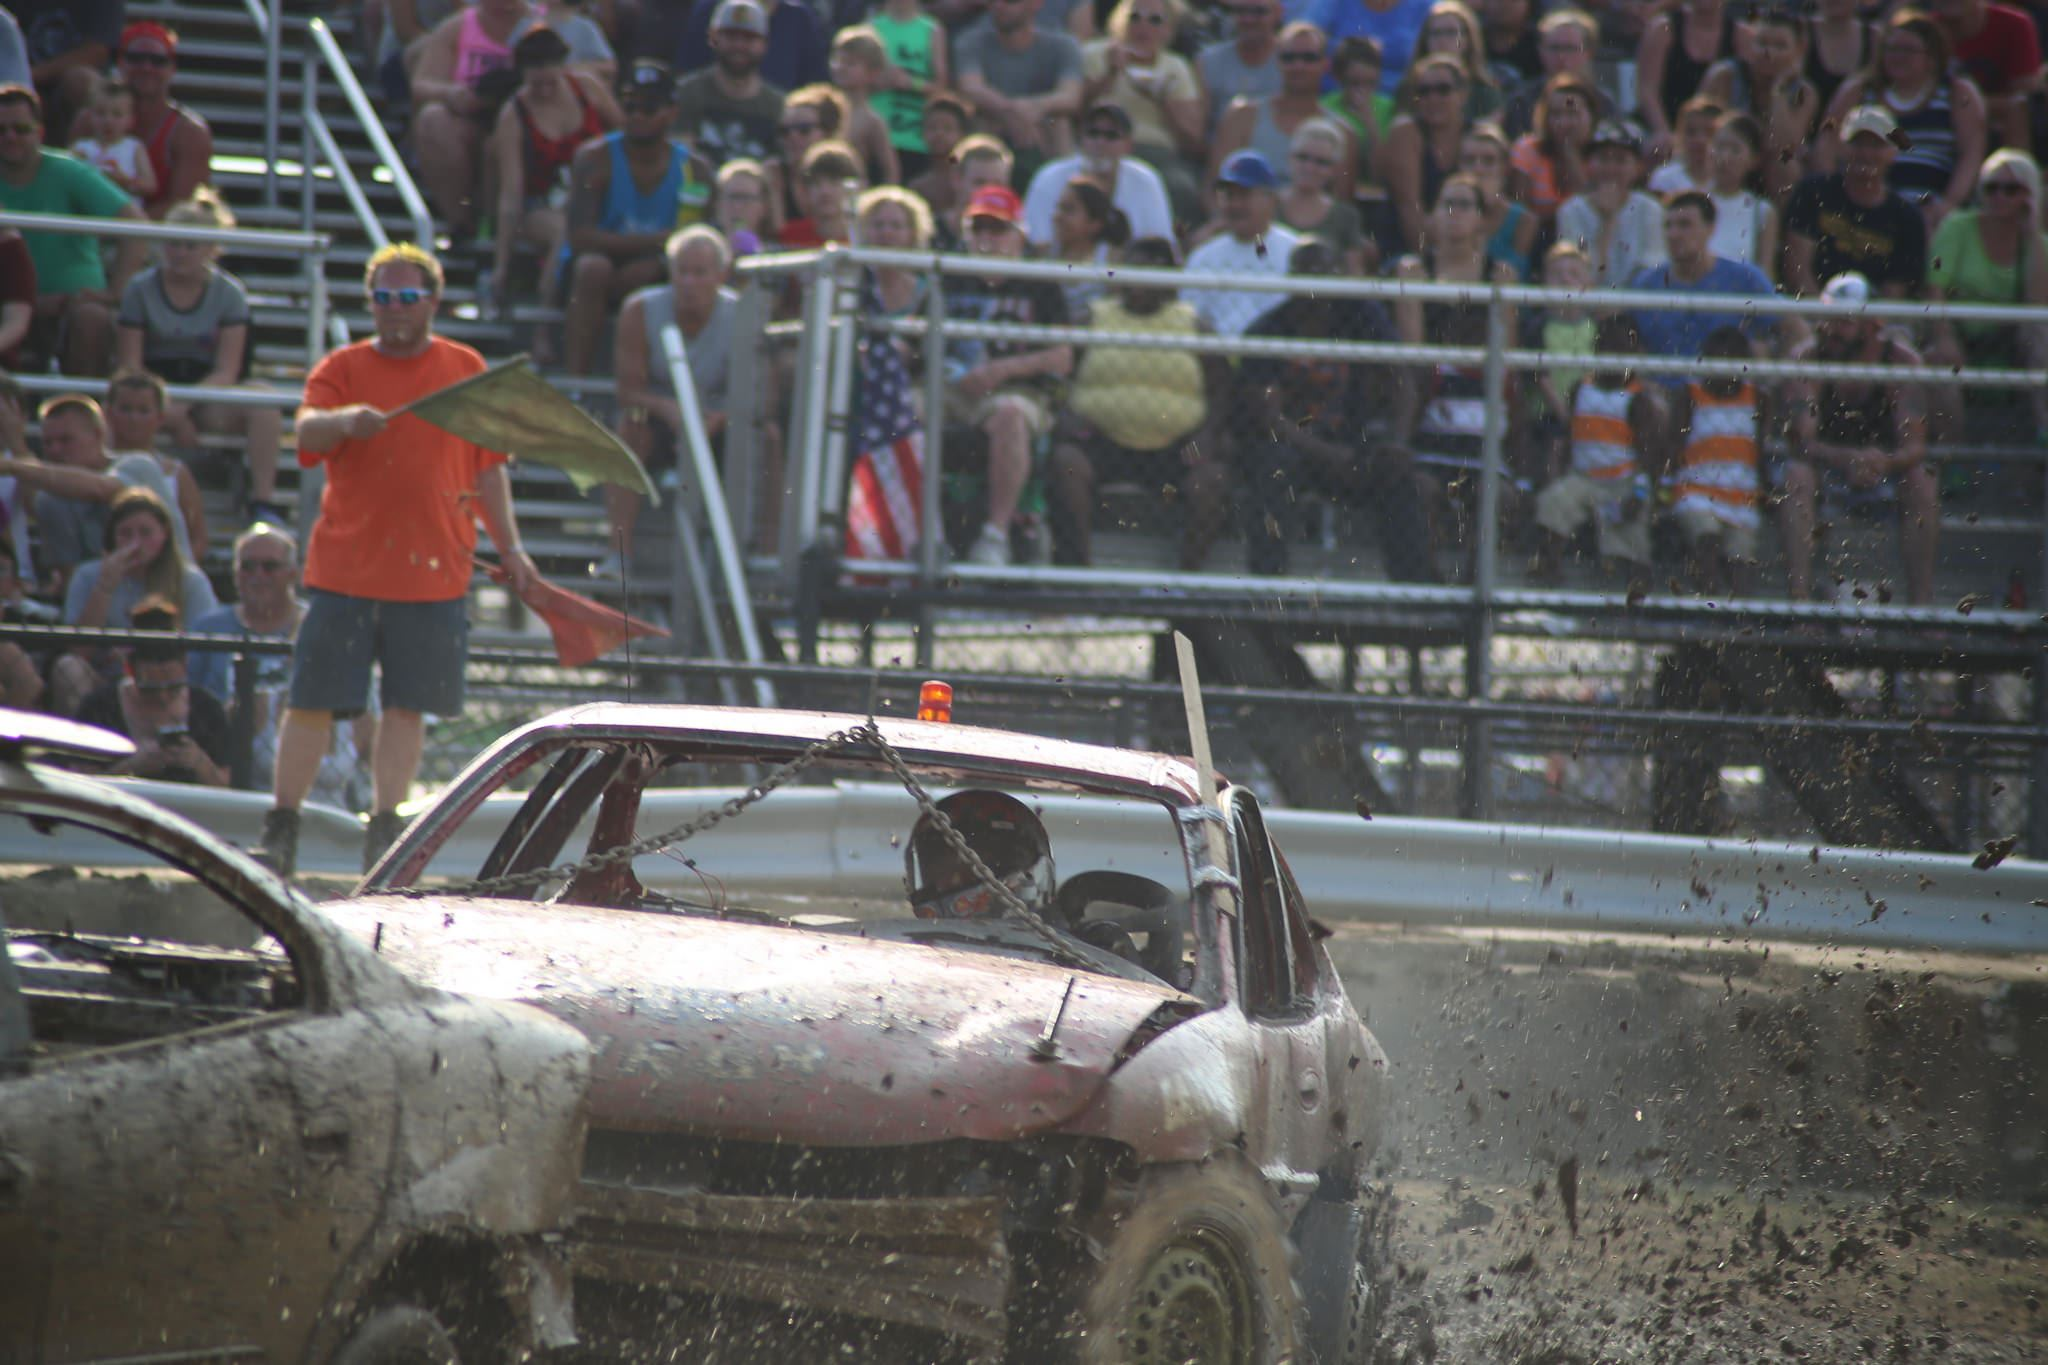 Cars smashing into each other at Demolition Derby